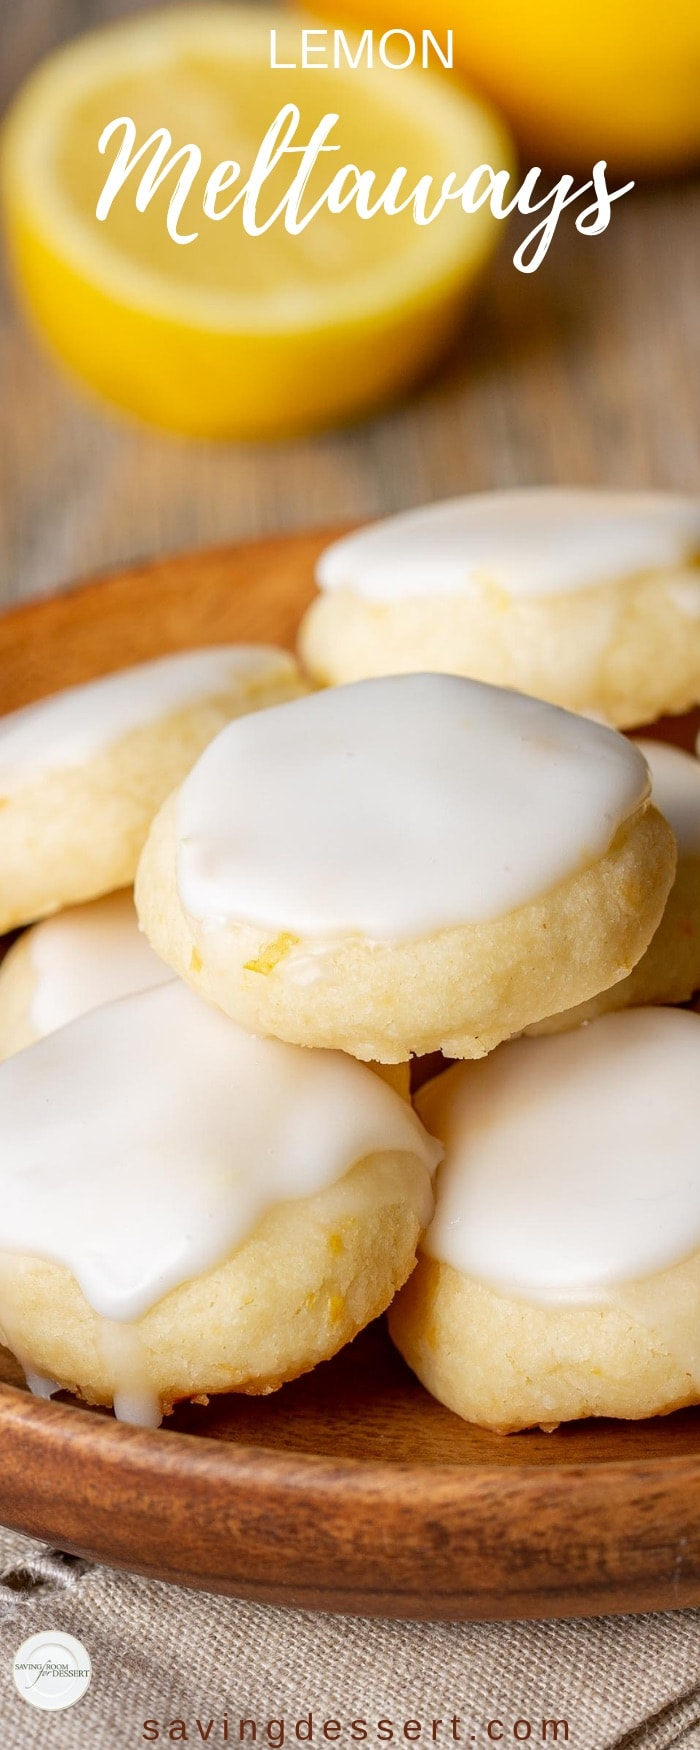 Lemon Meltaways ~ Light and buttery, these lemon bite-sized cookies are a real treat! Easy to make and the perfect little bite of lemon! #meltaway #meltawaycookies #cookies #lemoncookie #meltaways #lemonmeltaways